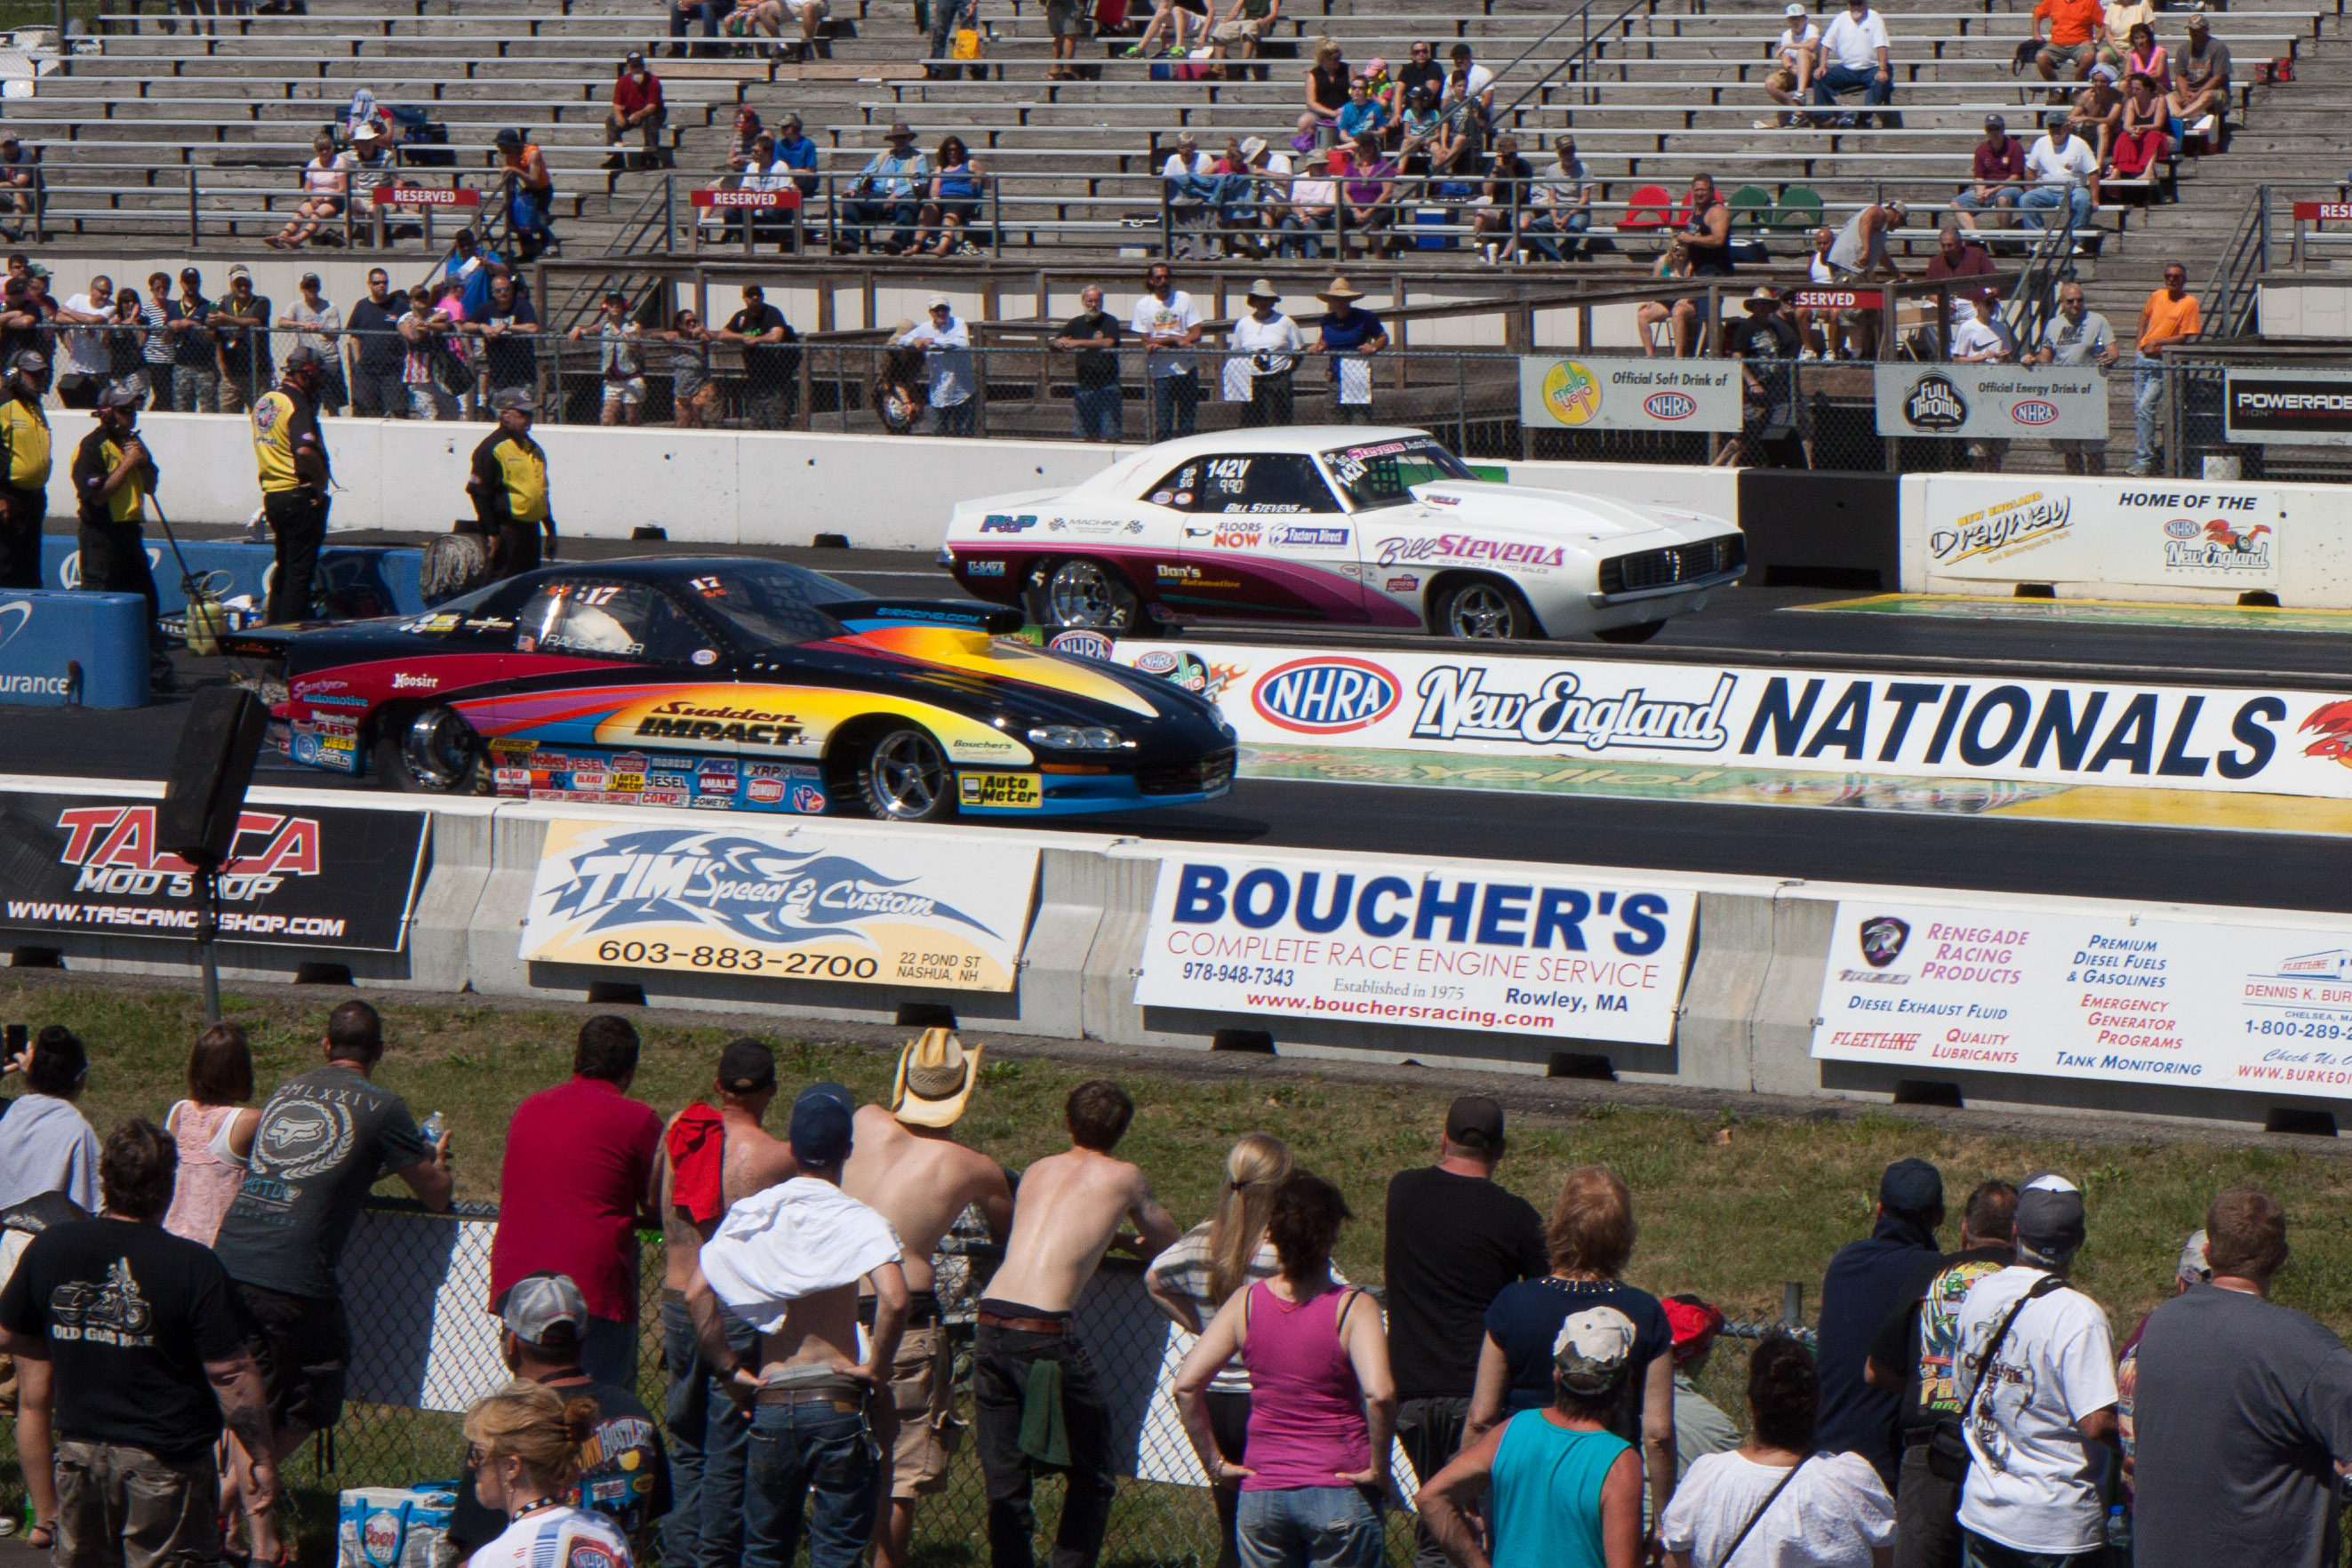 2015 NHRA Nats Sat Billy Start 132-1.jpg